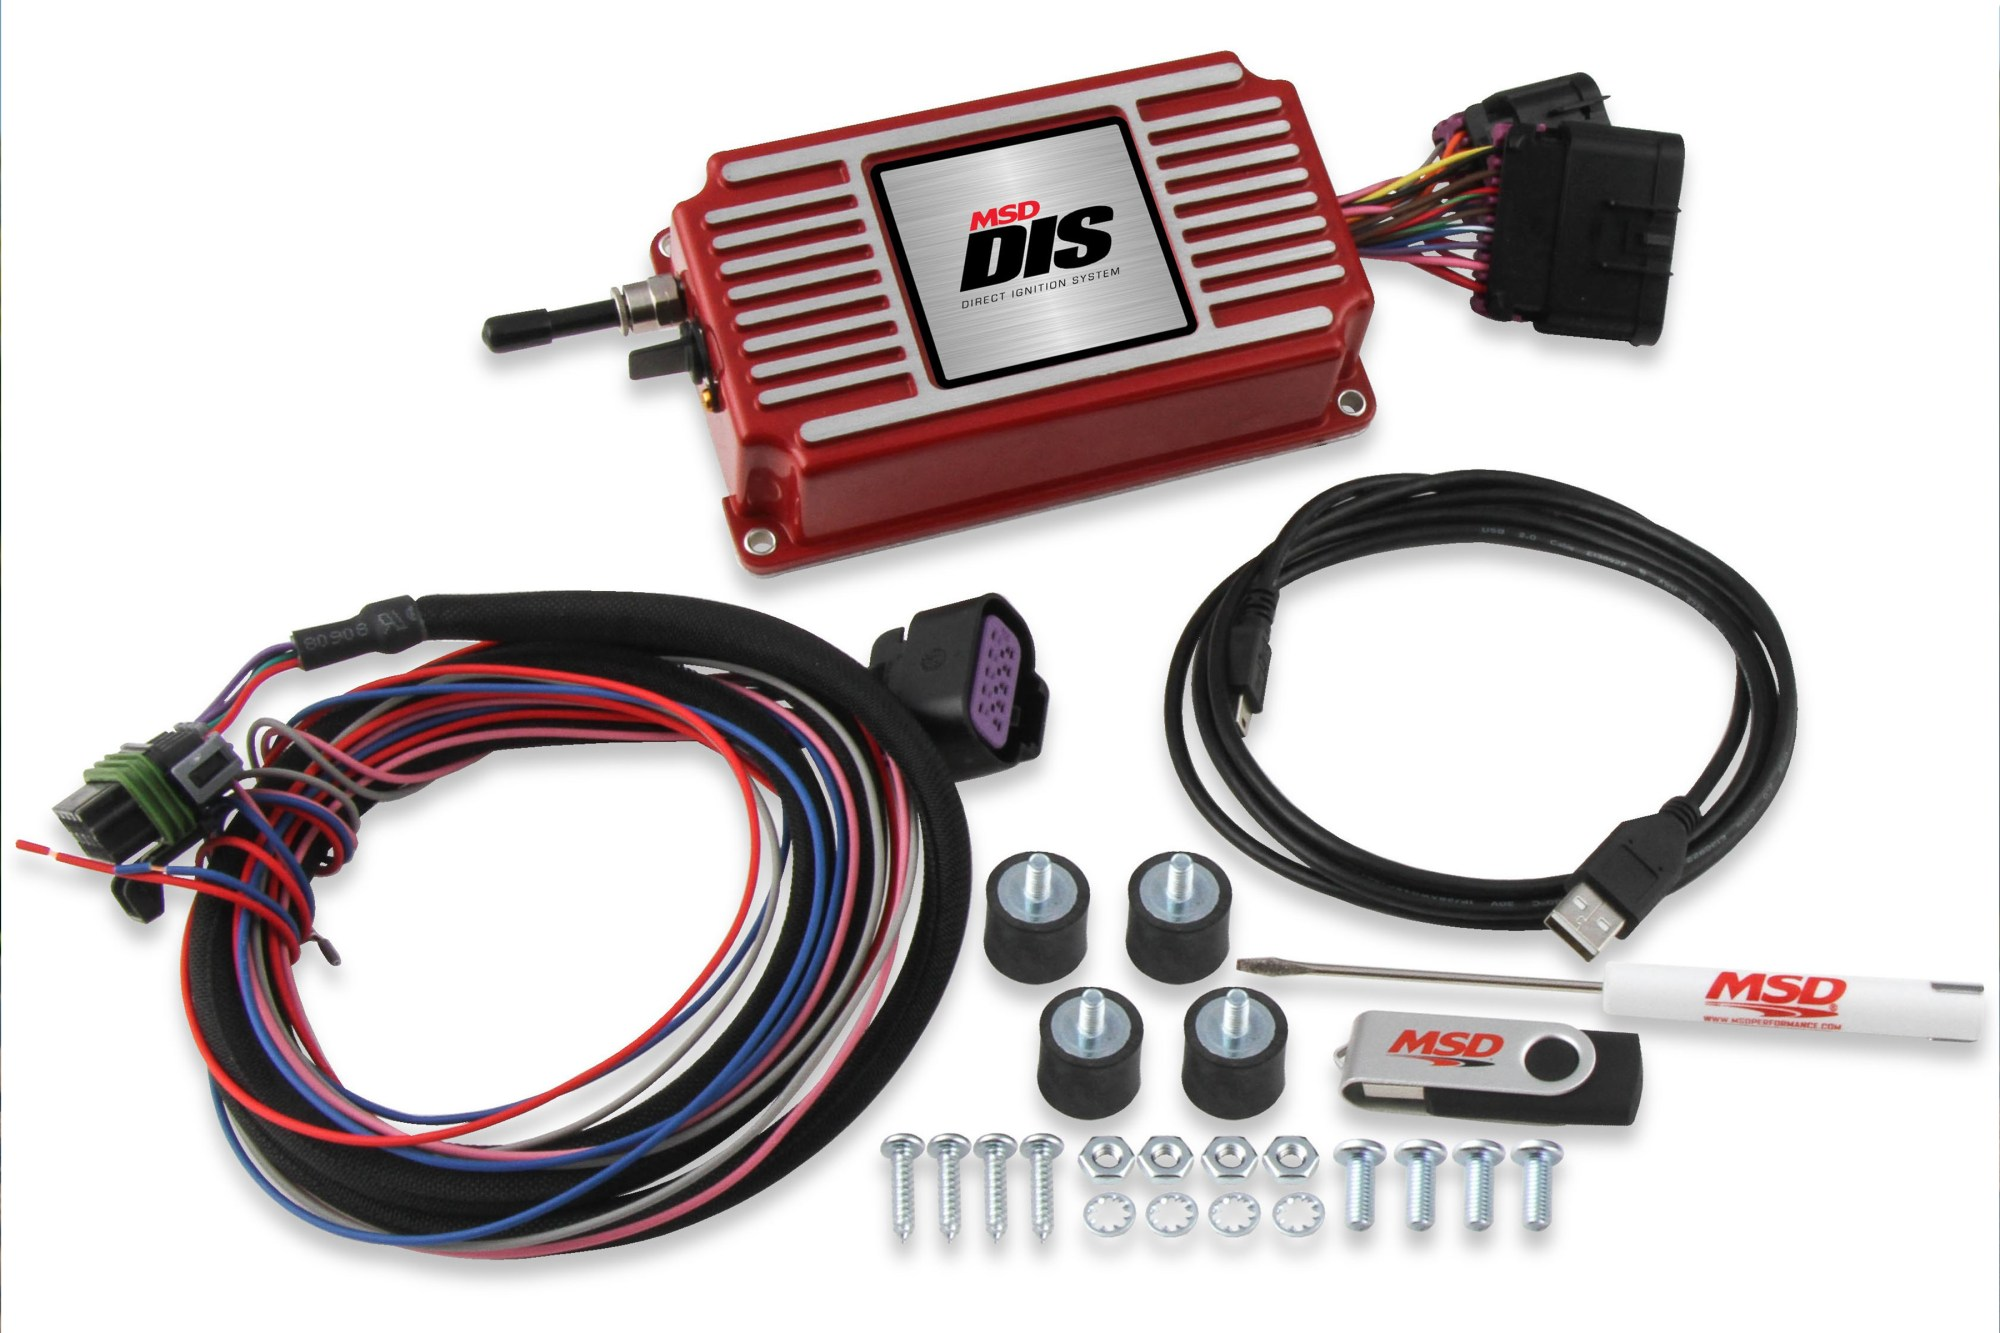 hight resolution of holley announces brand new msd direct ignition system kits